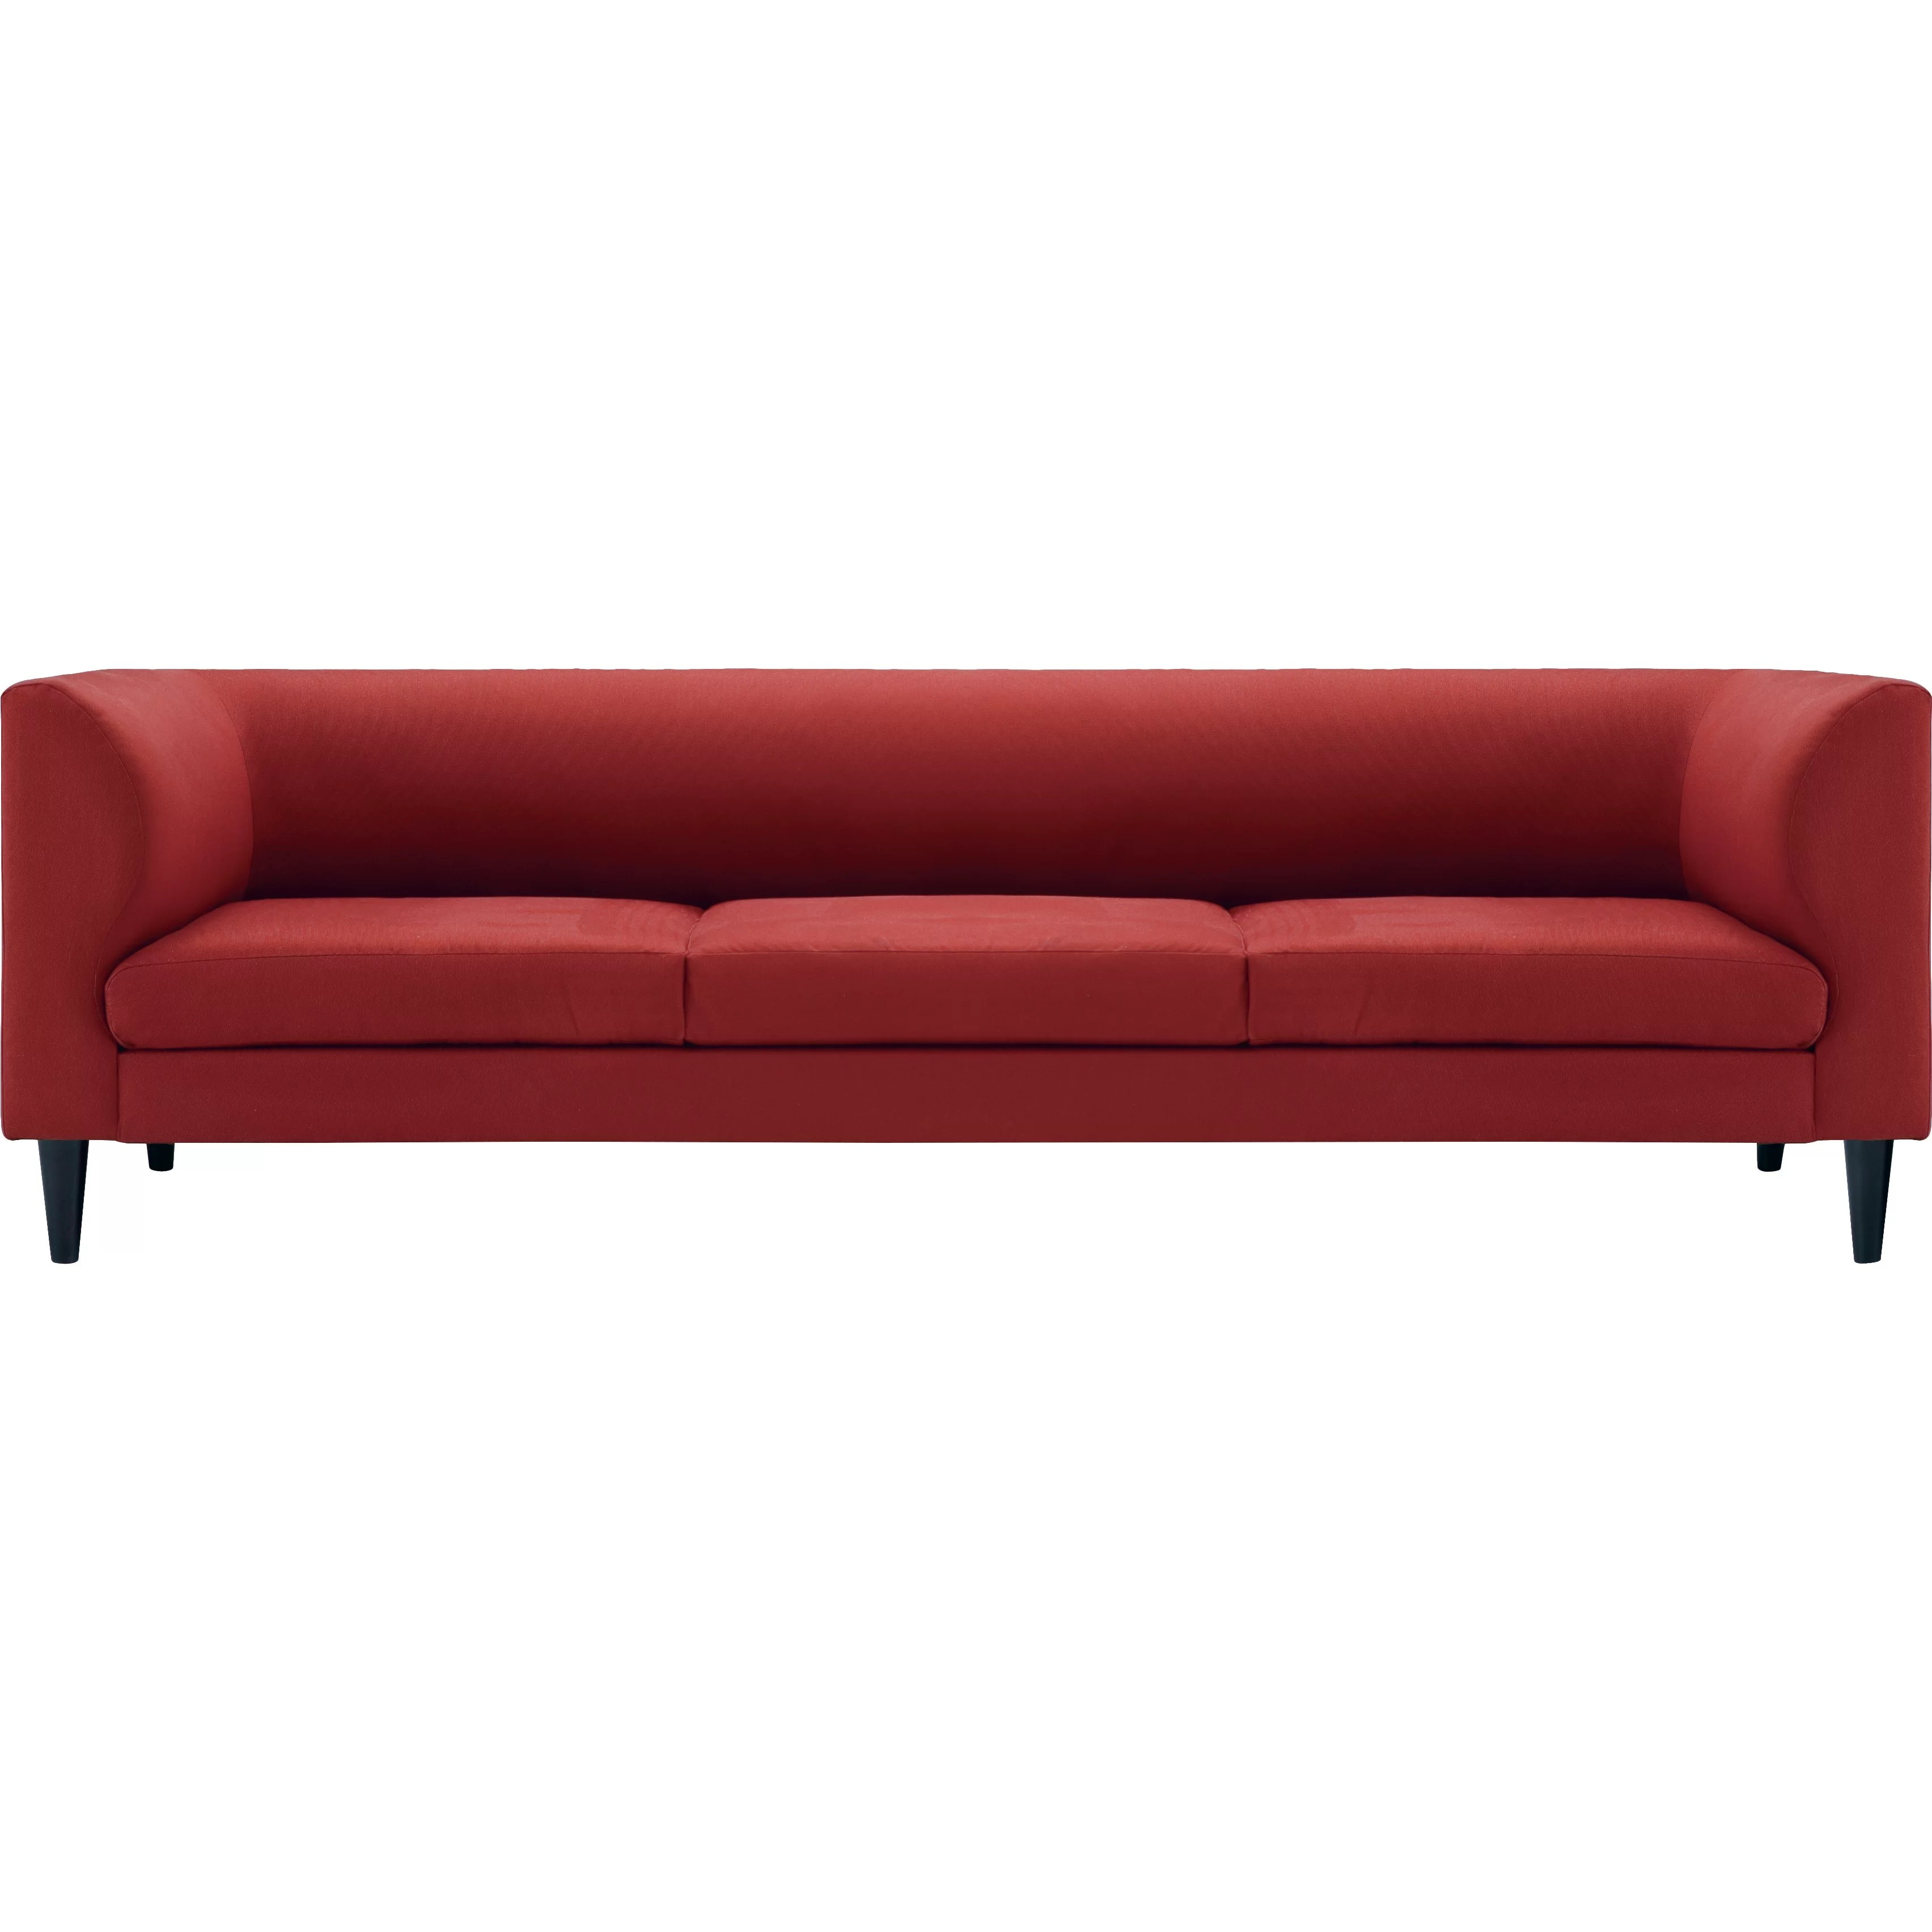 eq3 sofa sofas modernos para salas pequenas replay and reviews wayfair